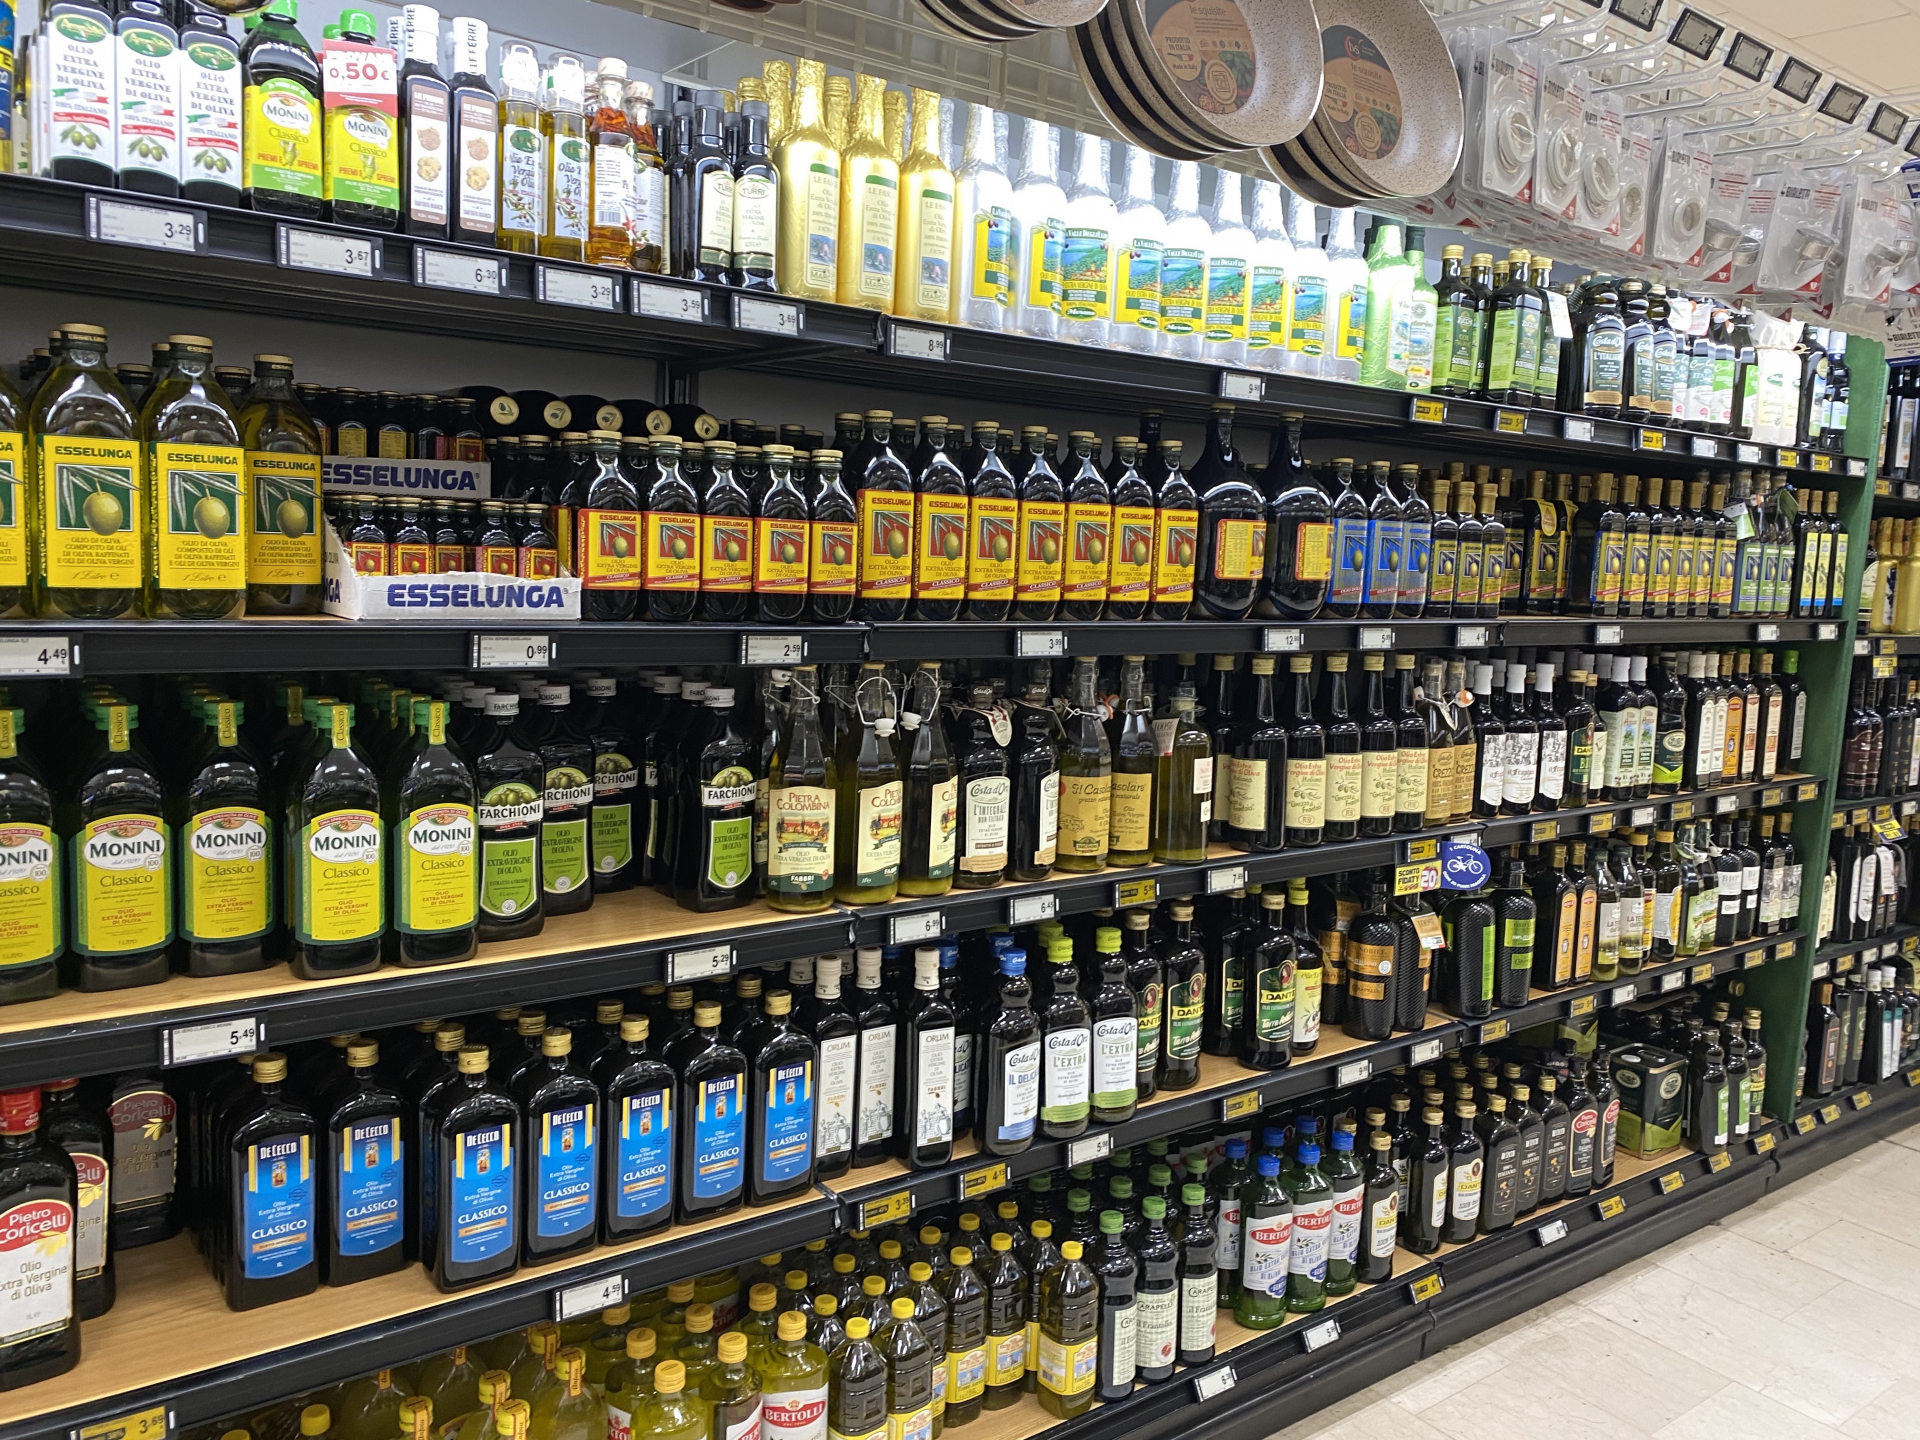 Olive Oil stocked in Italy. Update of 28 February 2021